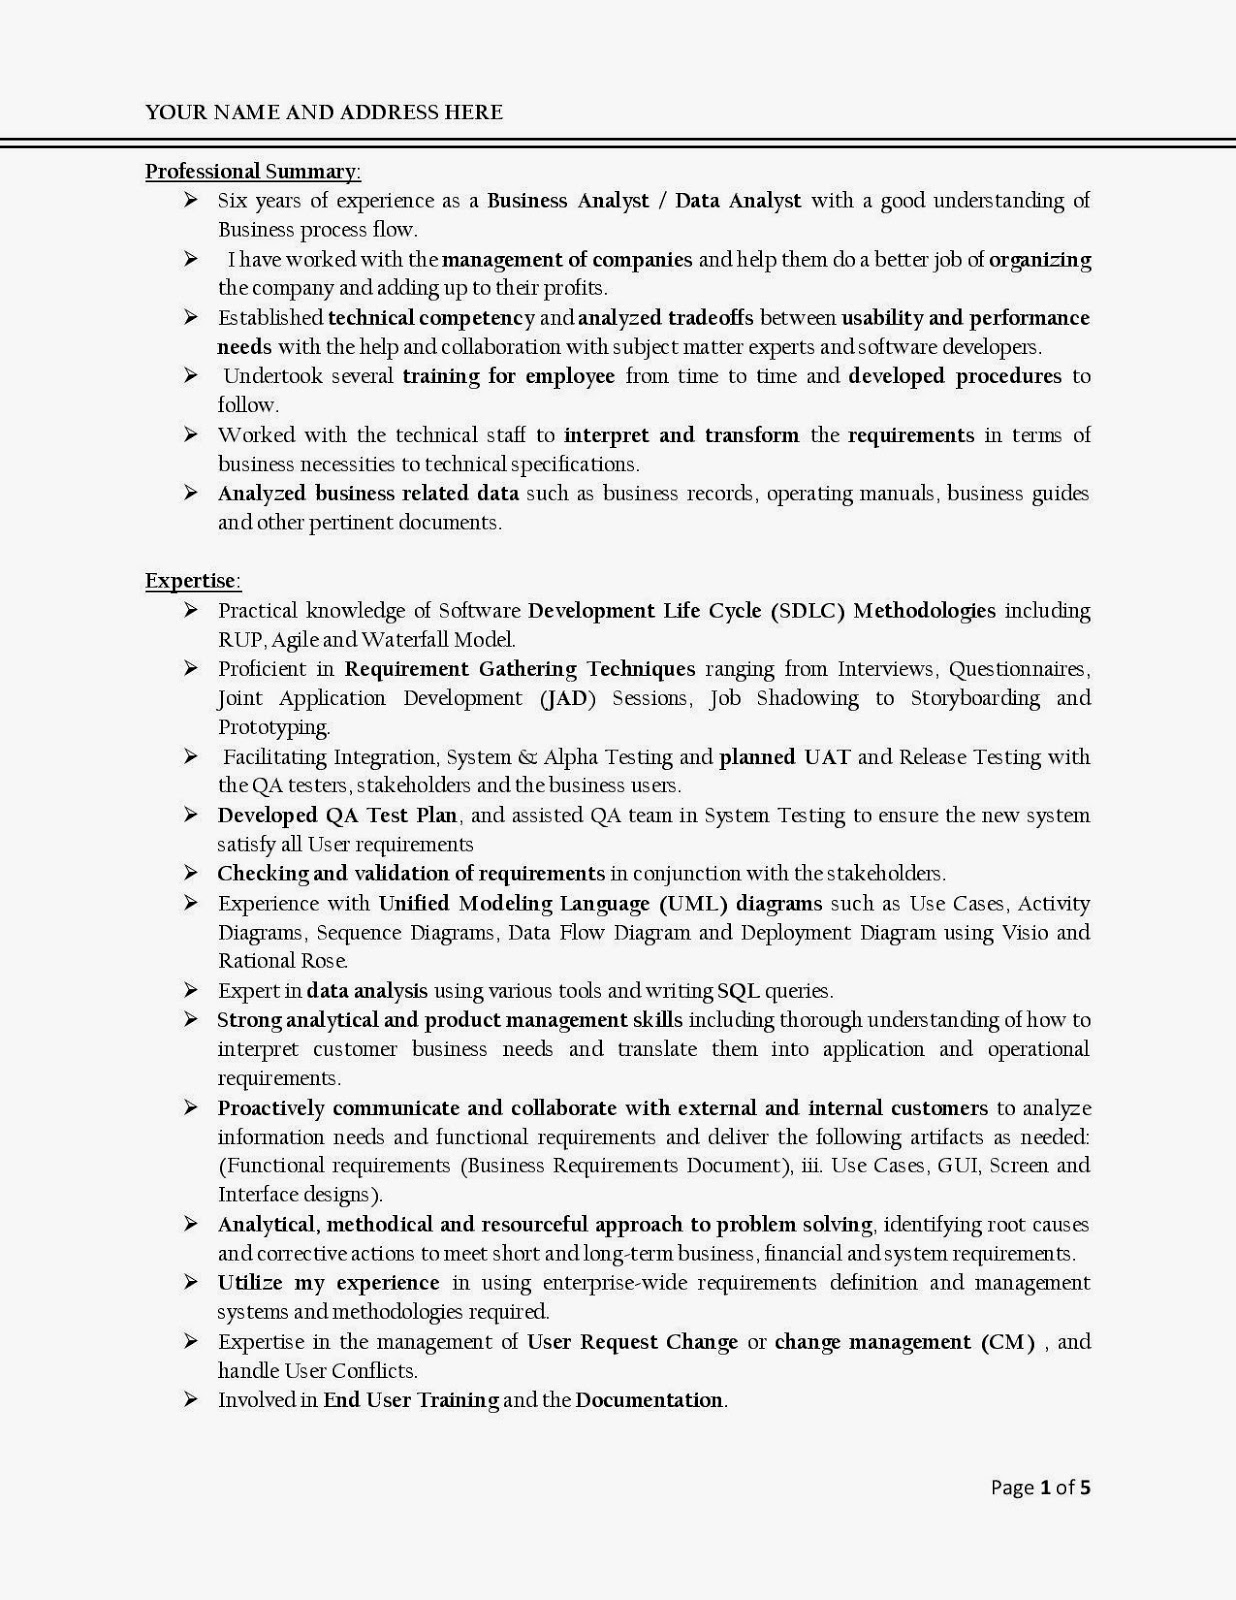 Sample_Business_Analyst_Resume-page-001.jpg